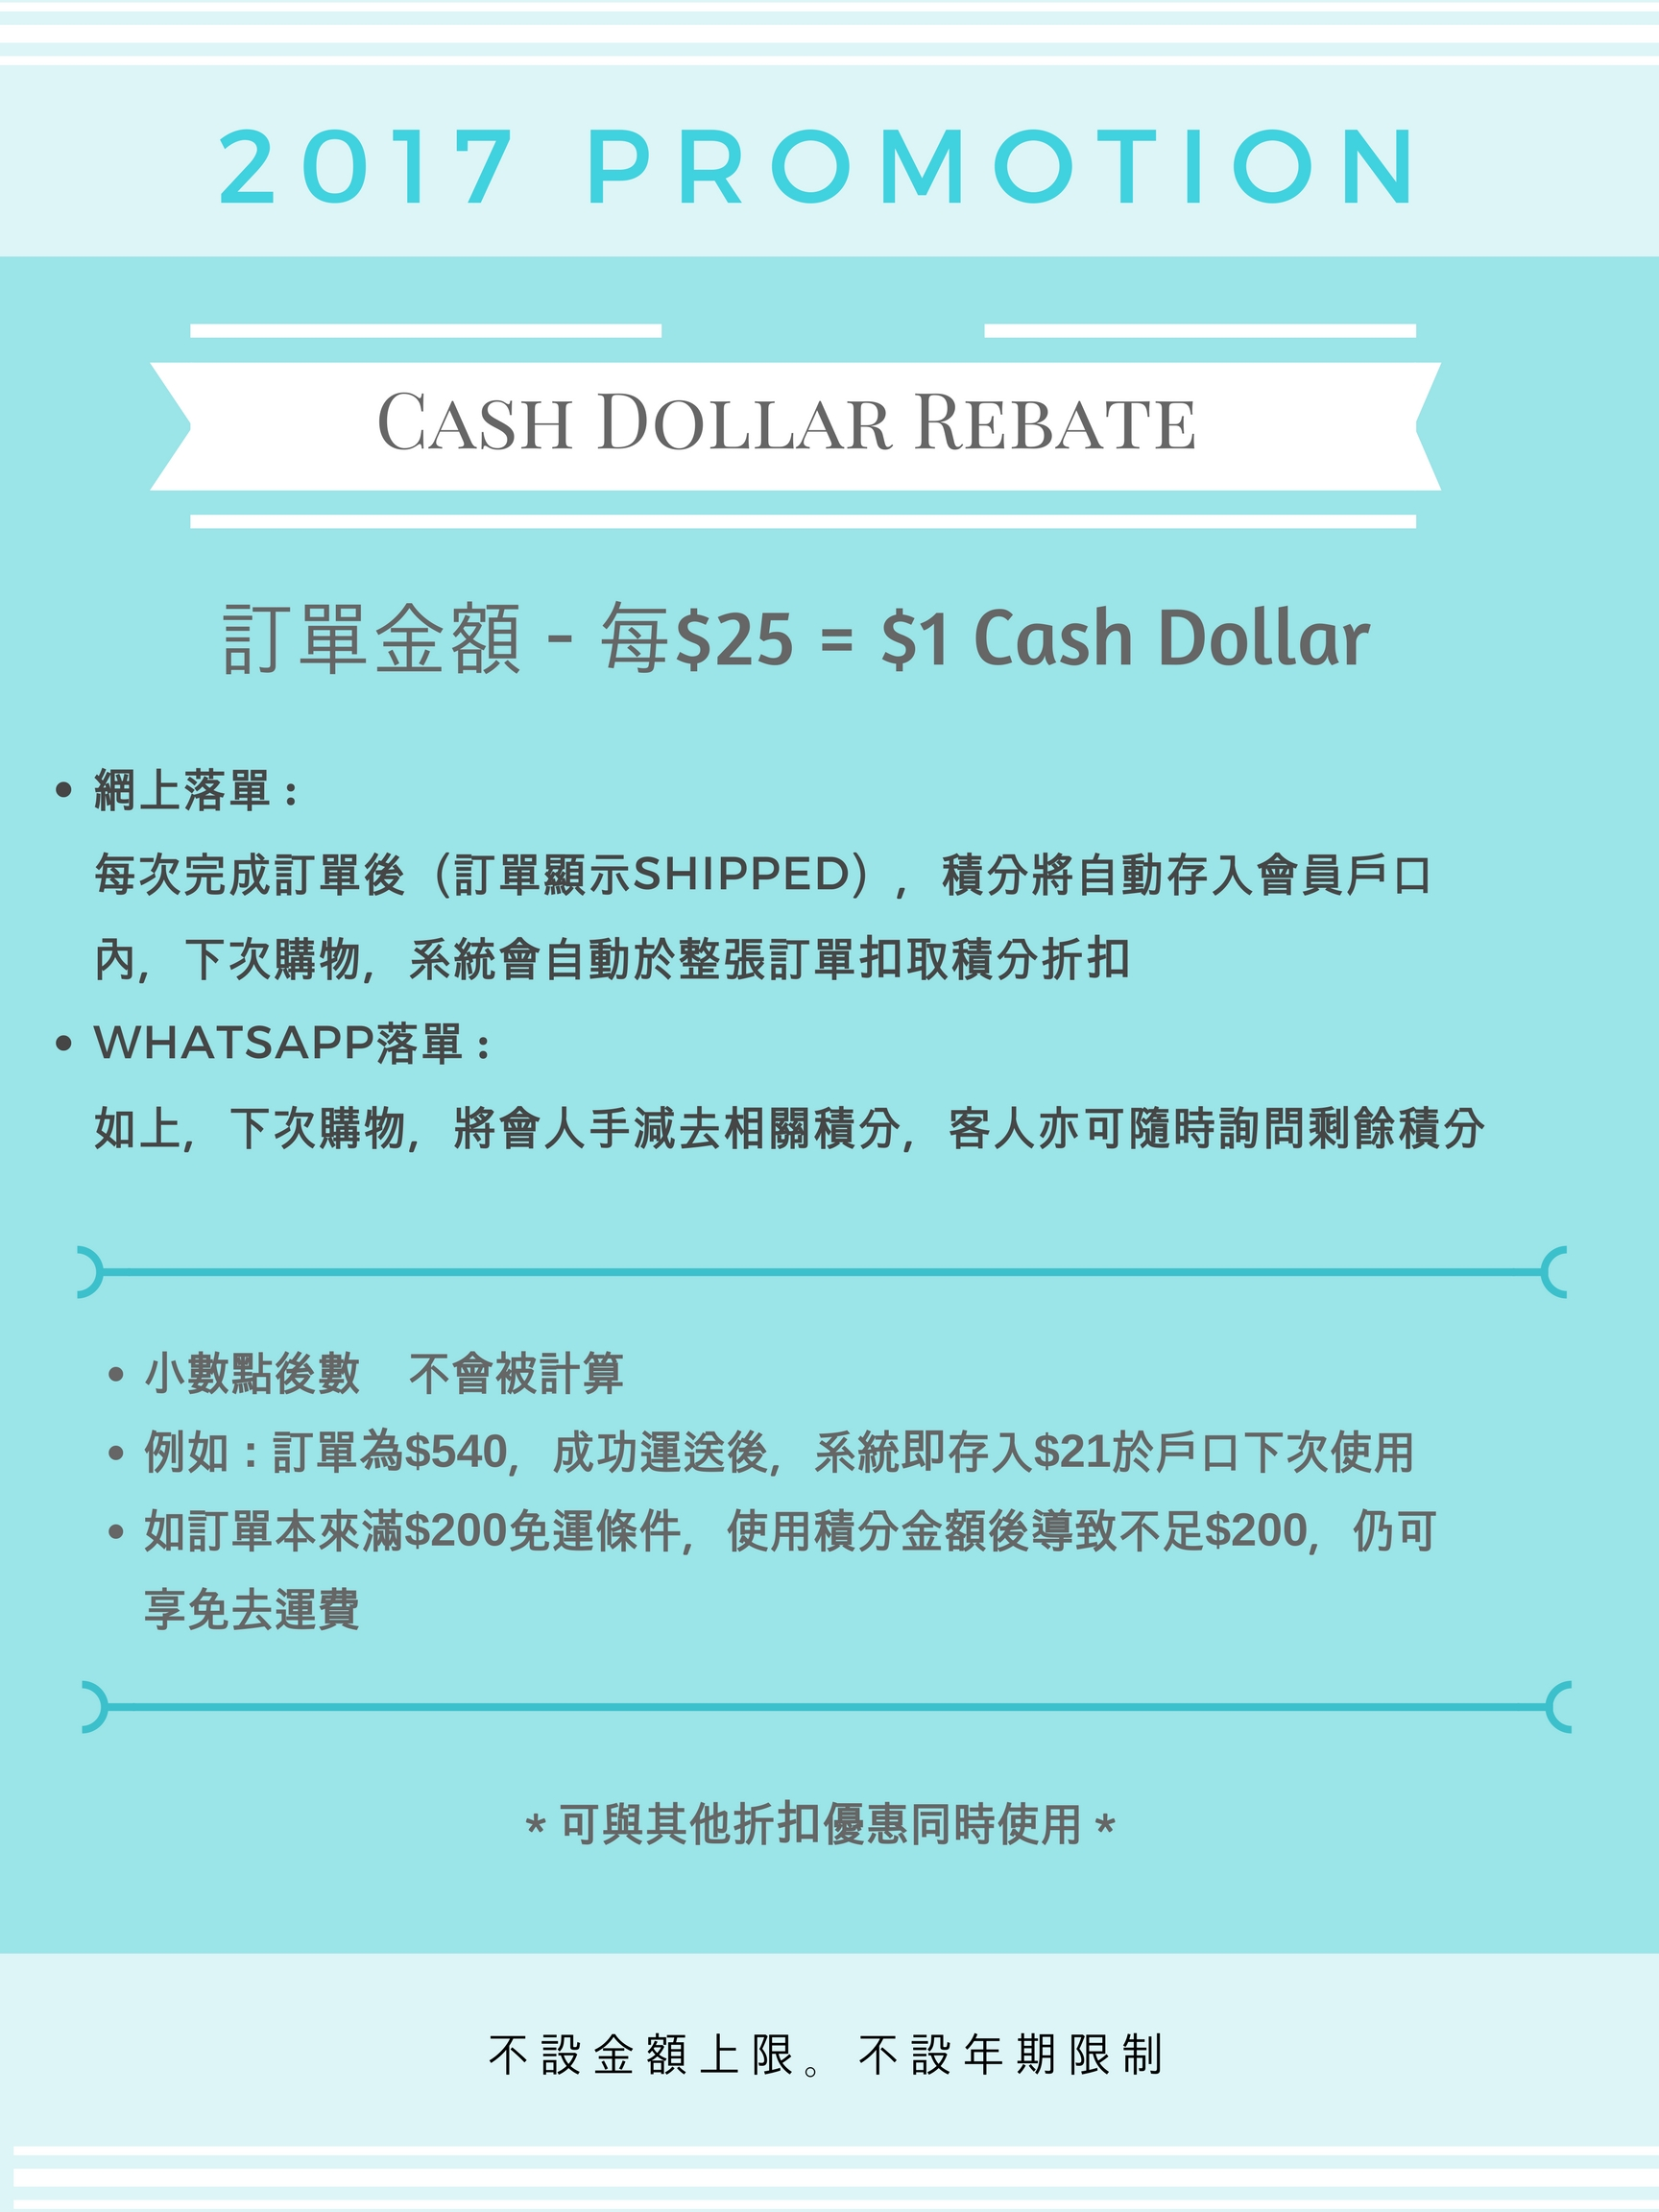 cash-dollar-rebate-18-1-2017.jpg